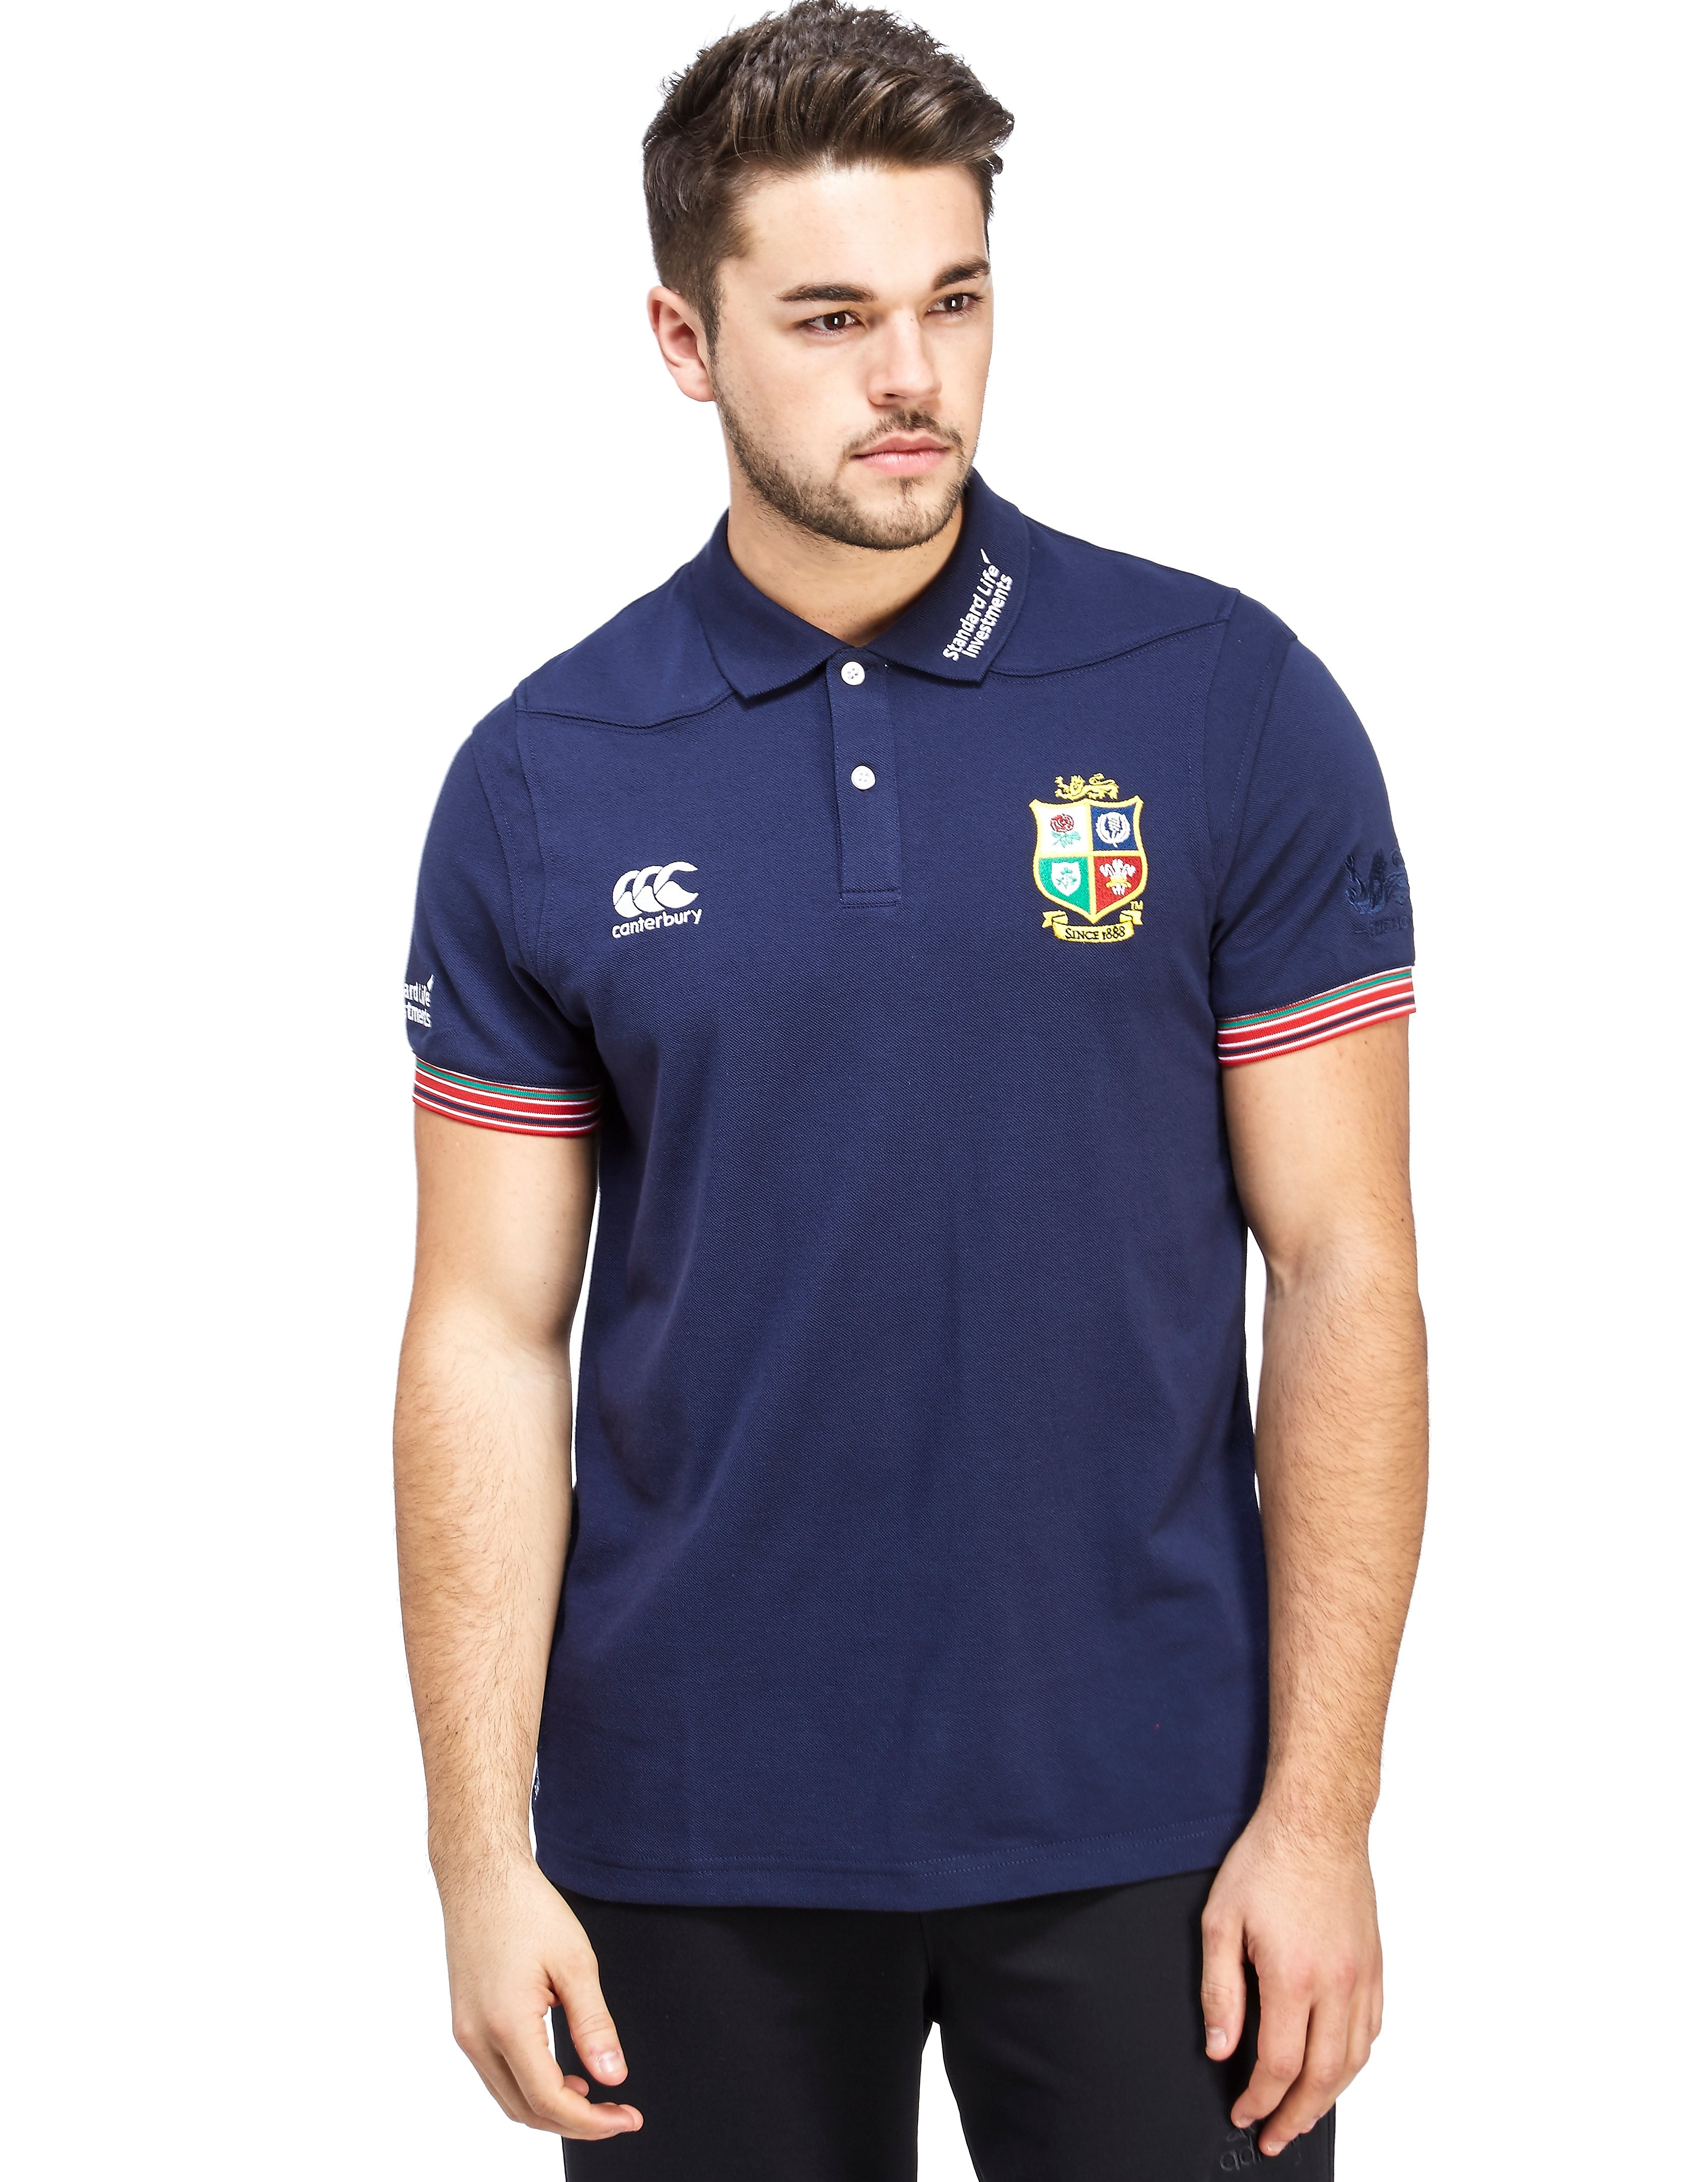 Canterbury British and Irish Lions 2017 Polo Shirt